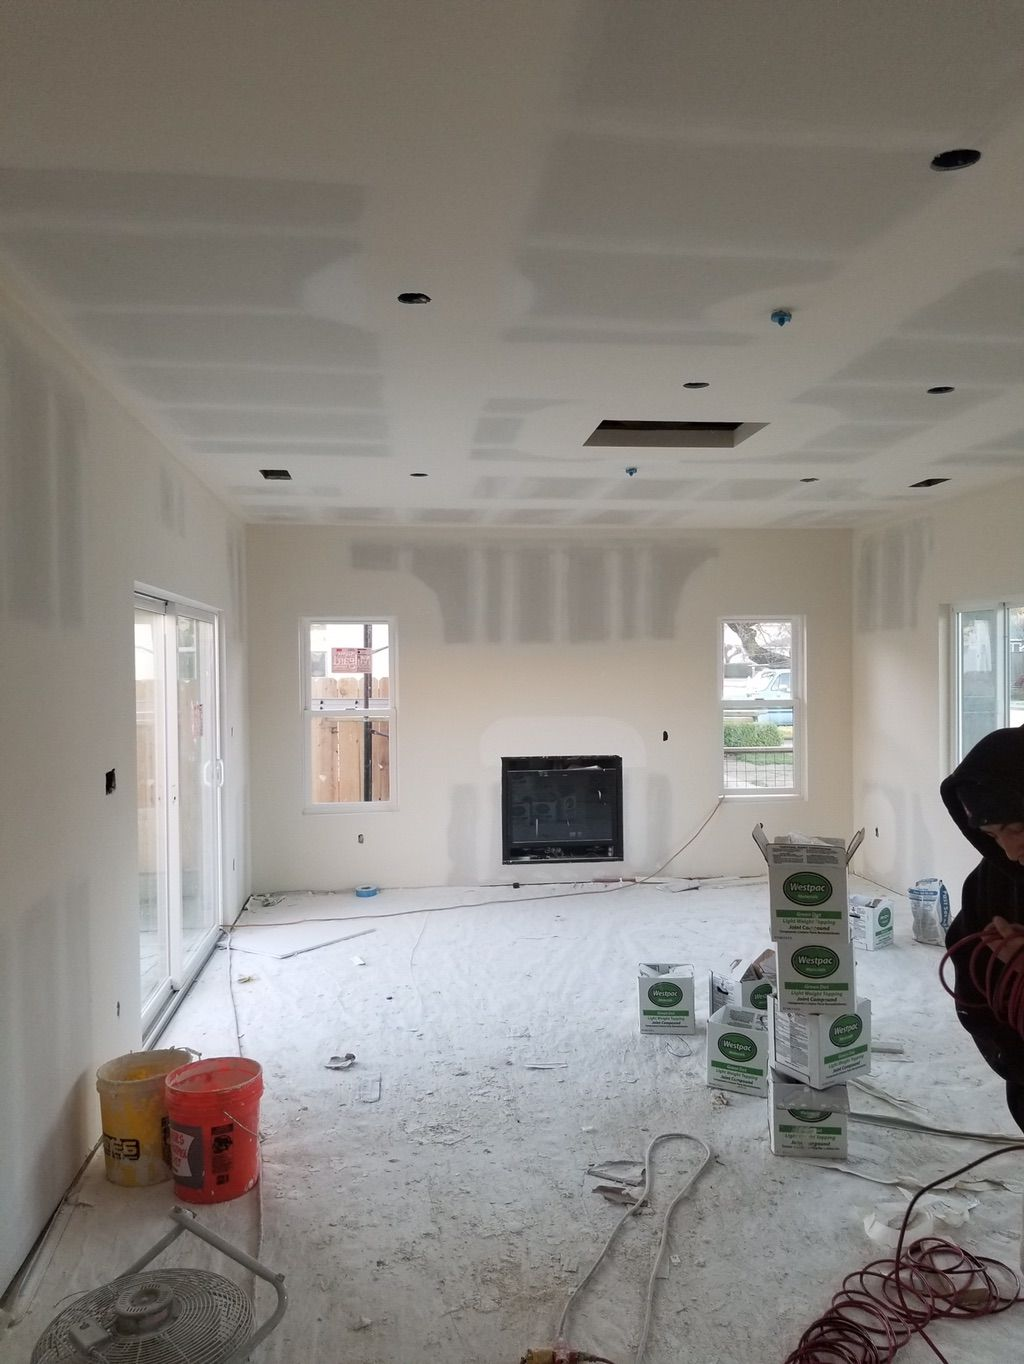 Henson Drywall & Paint Services